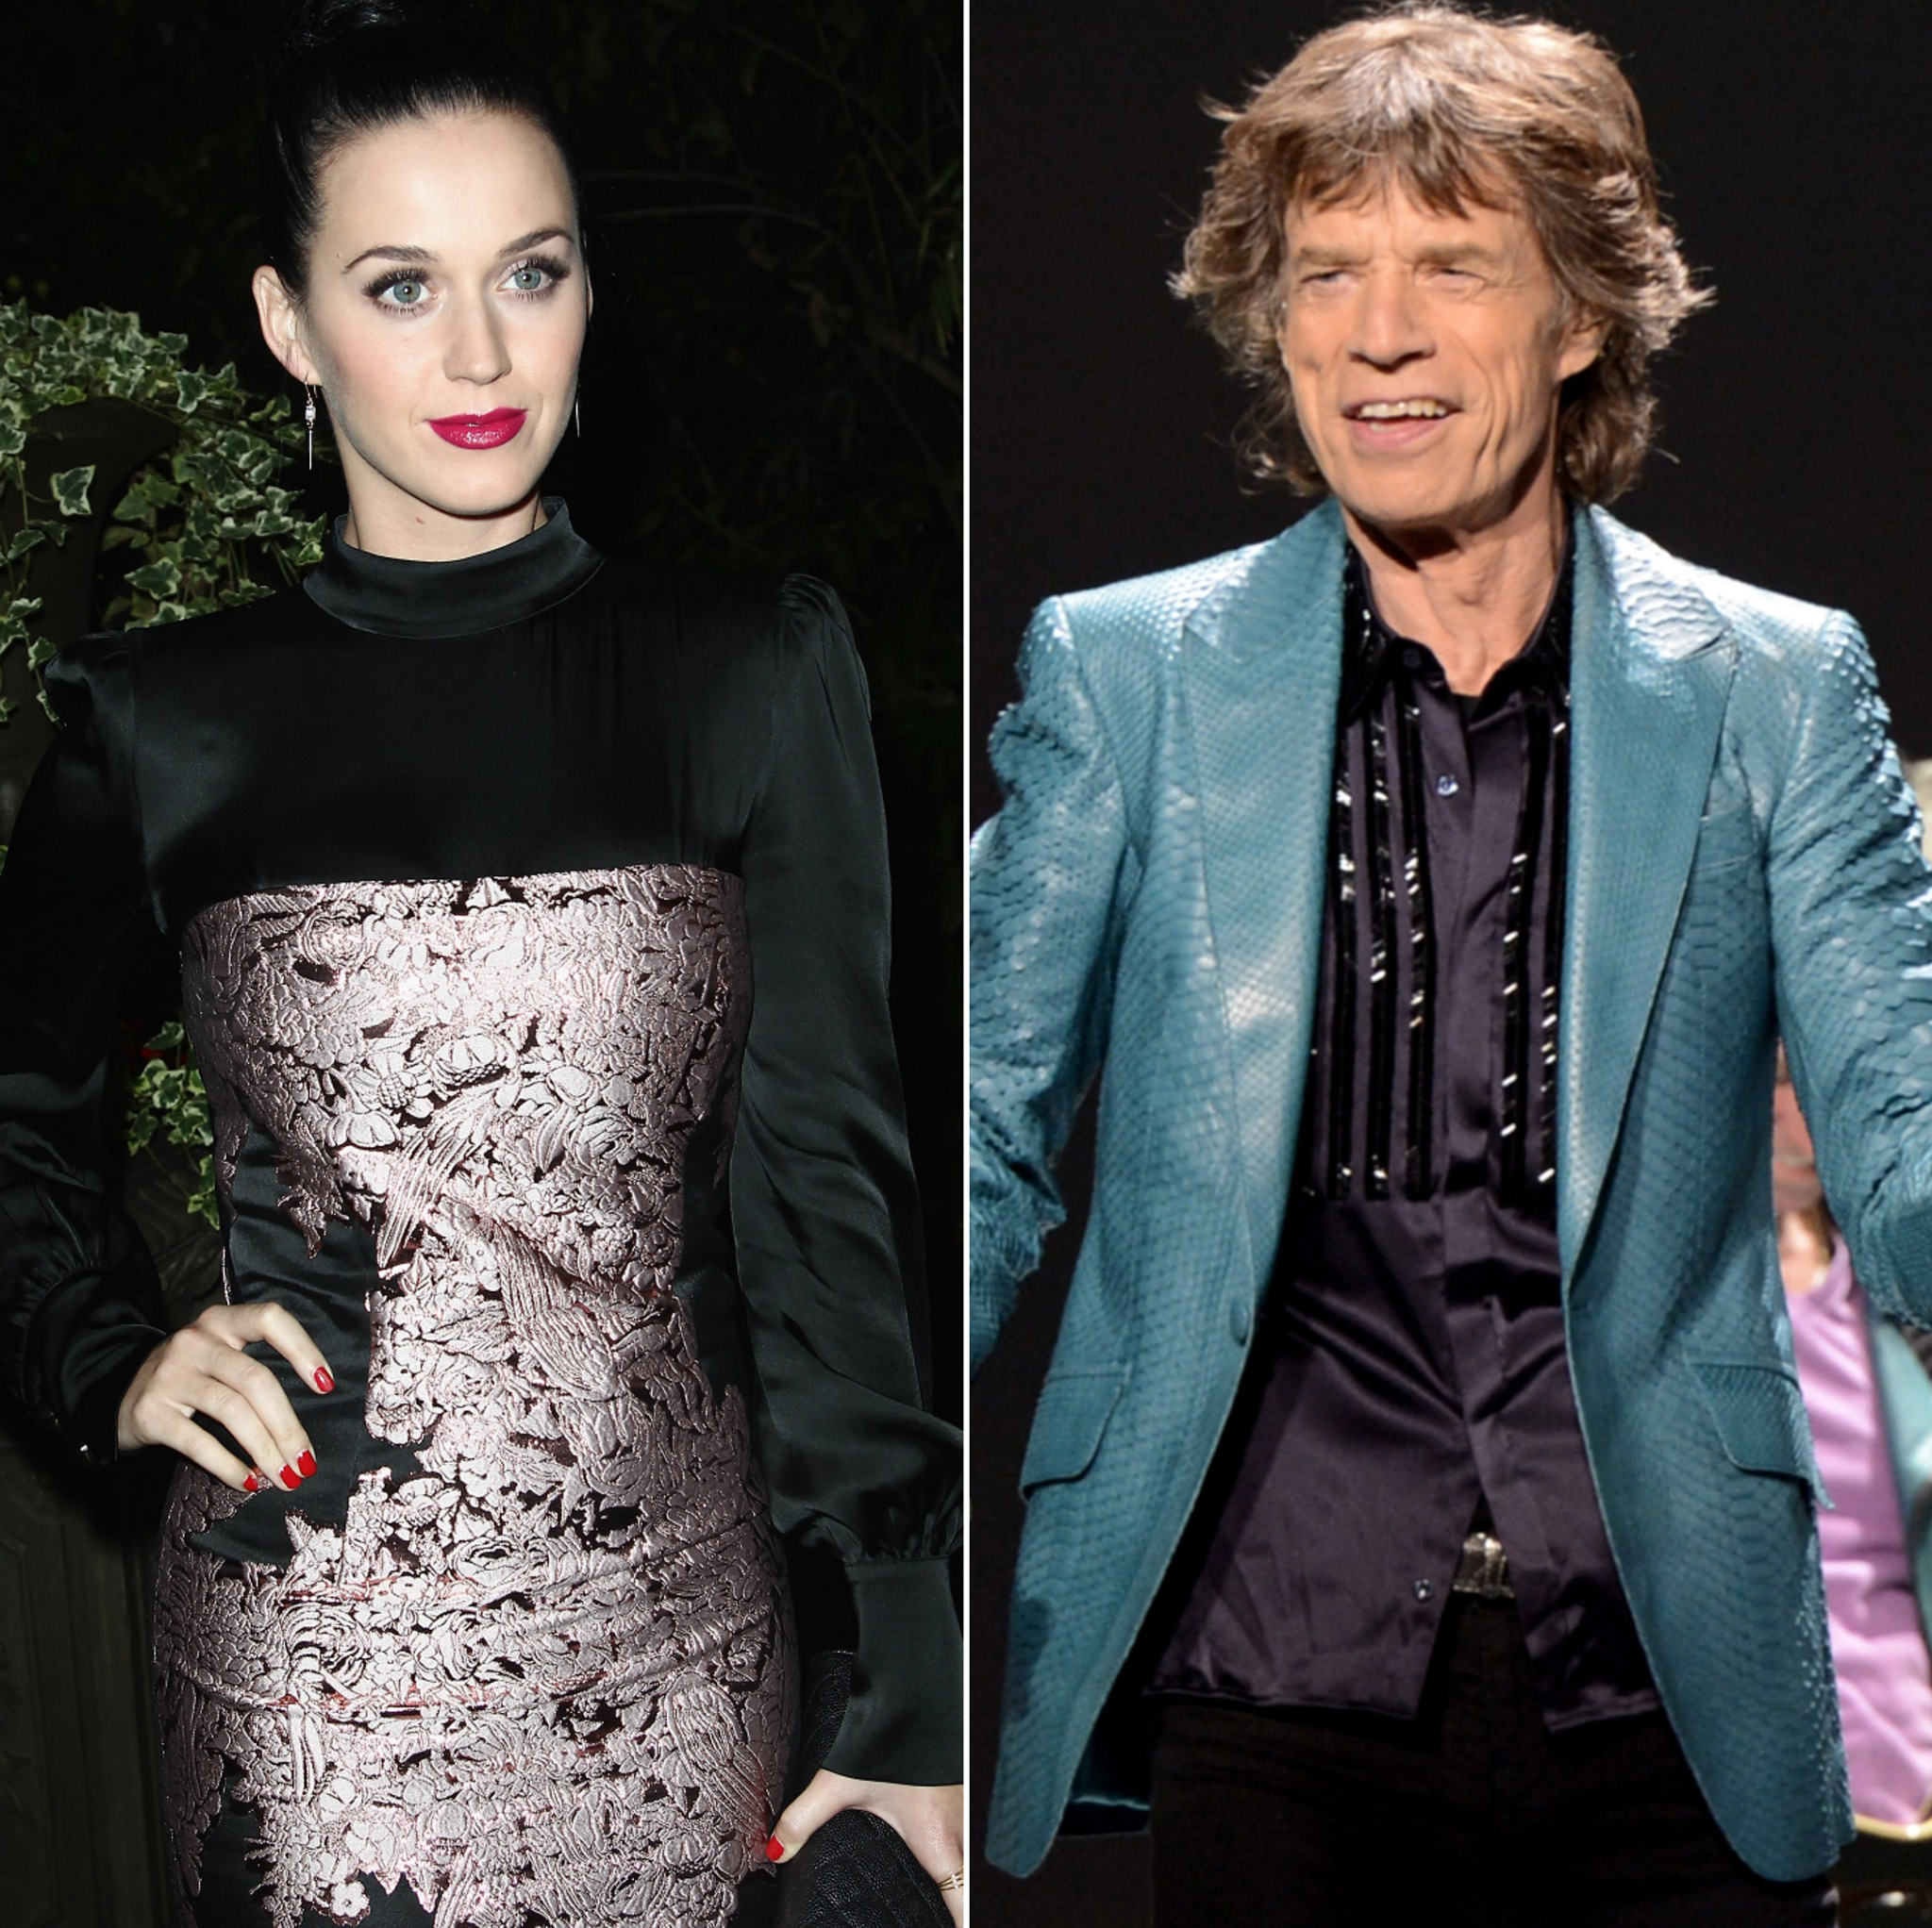 Mick Jagger and Katy Perry (Getty Images)